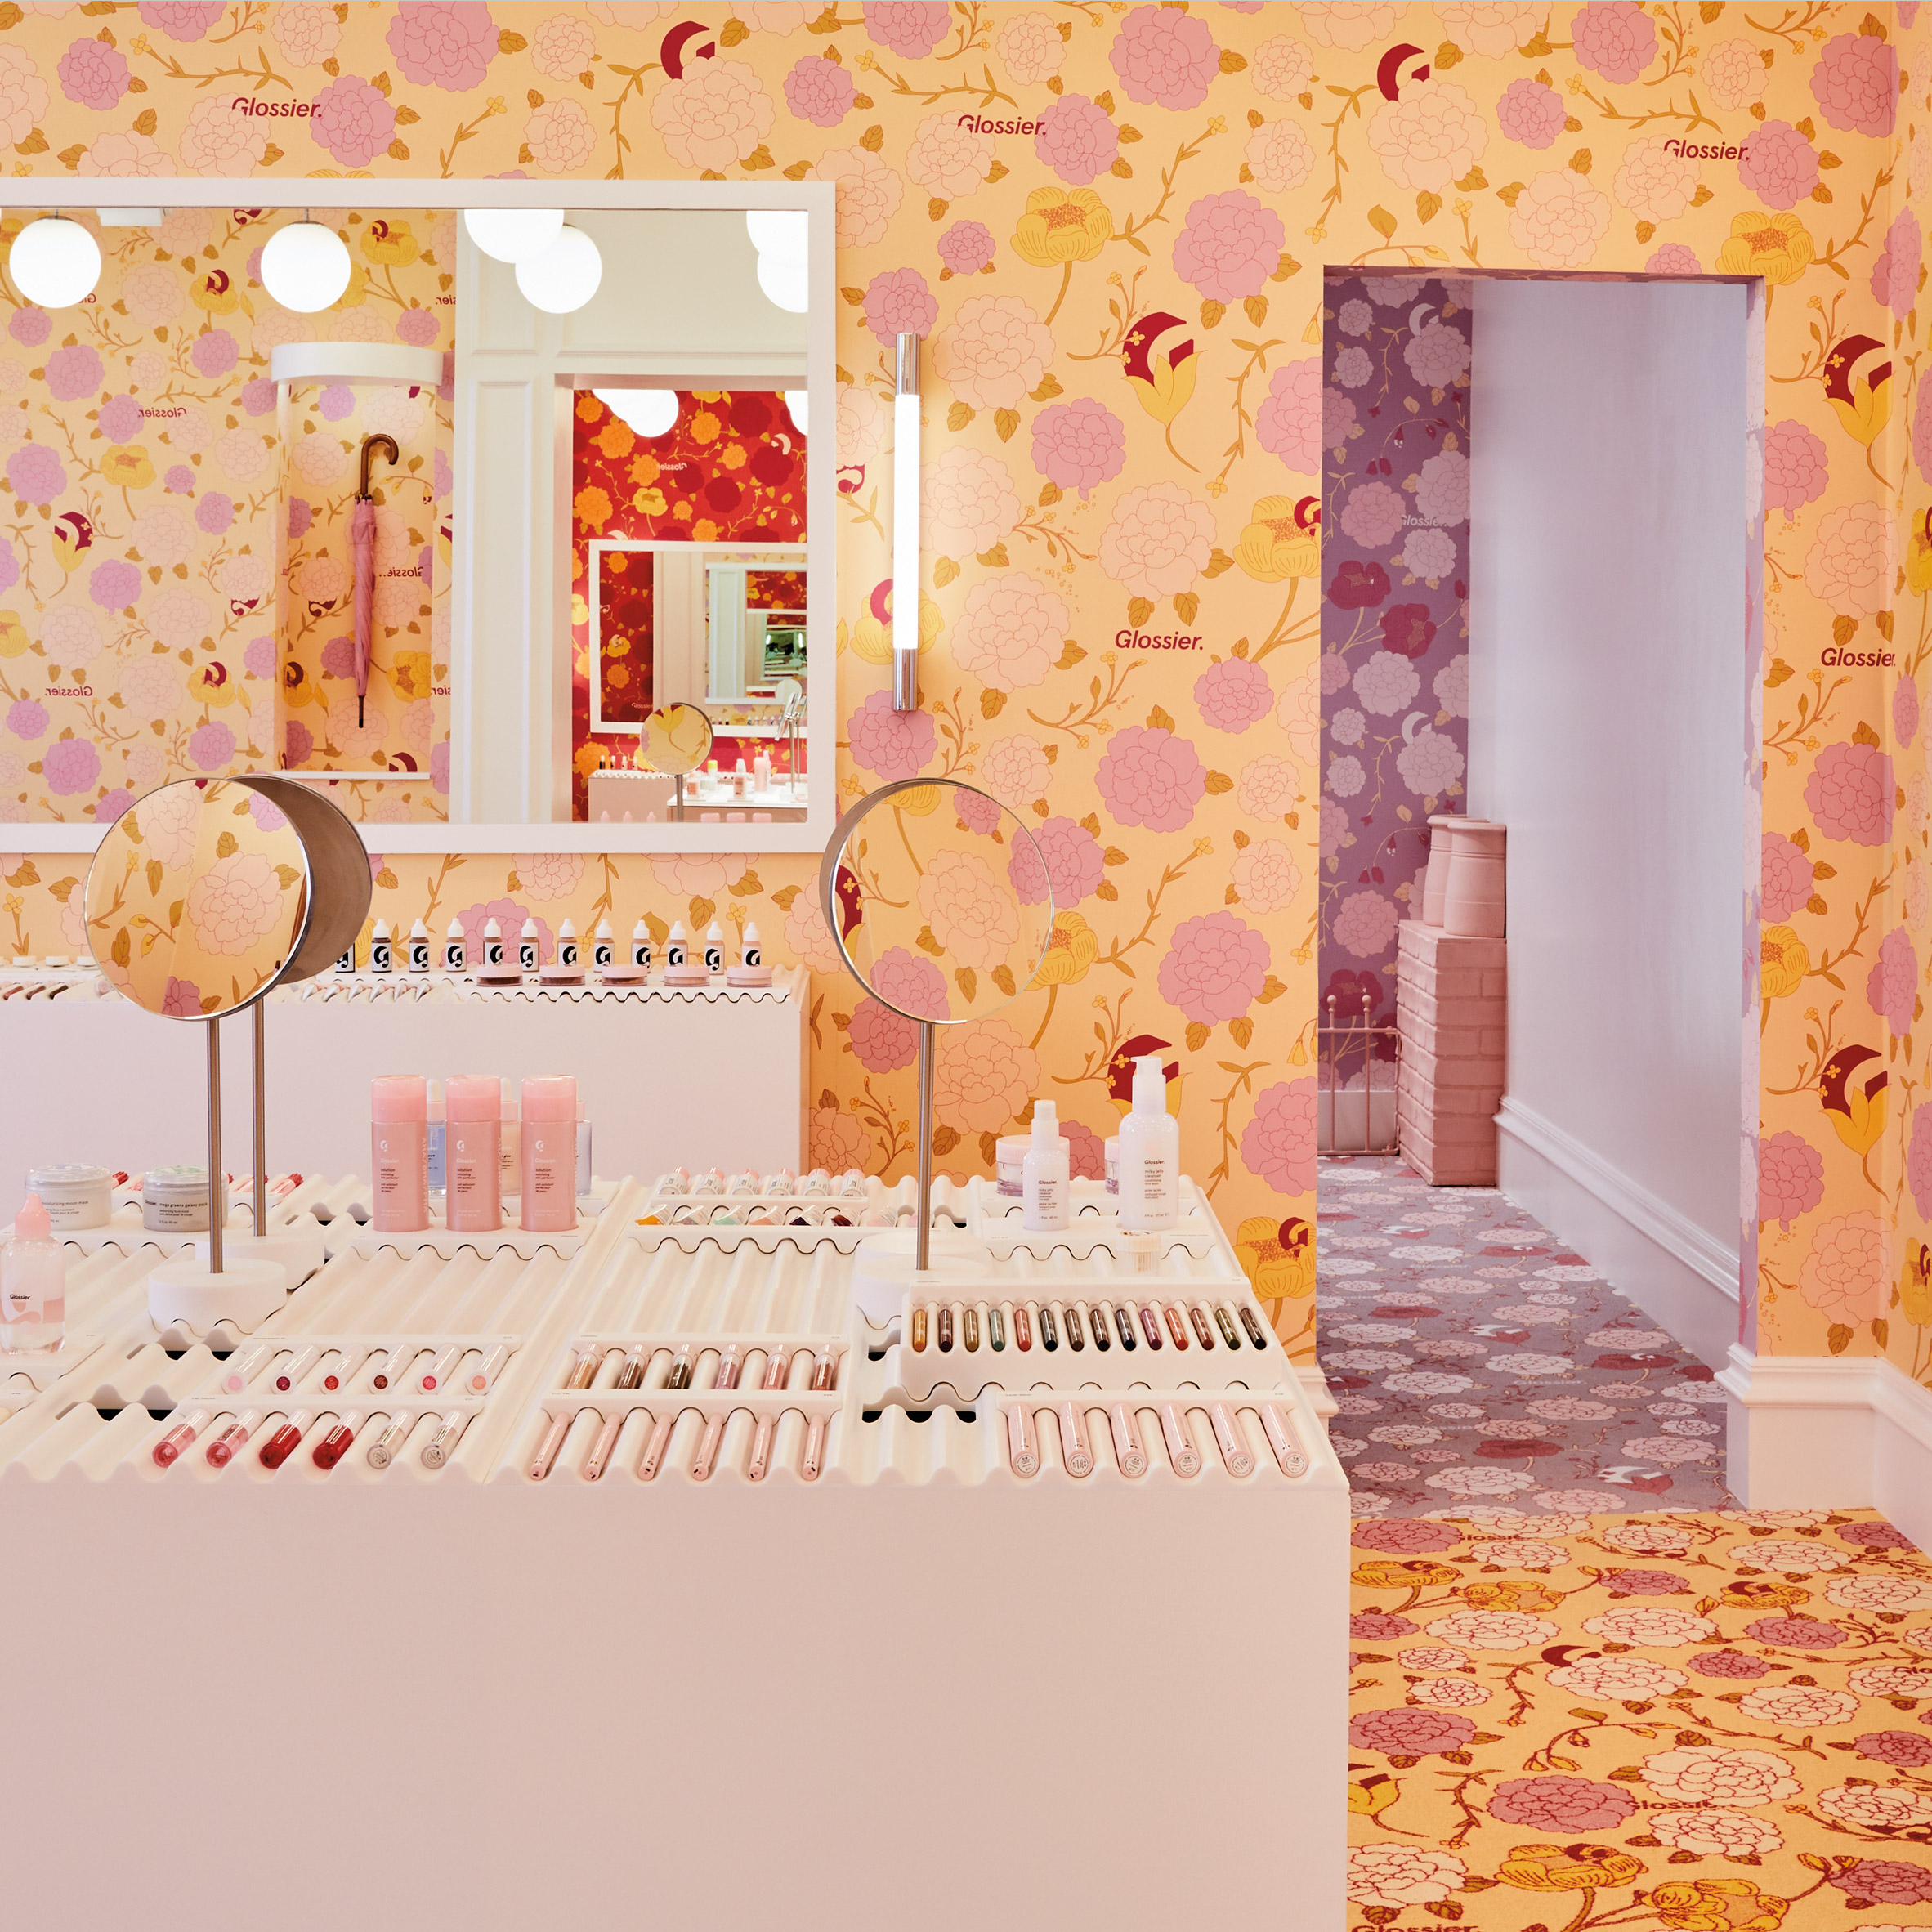 Glossier S Floral Pop Up Store In London Blooms With Colour